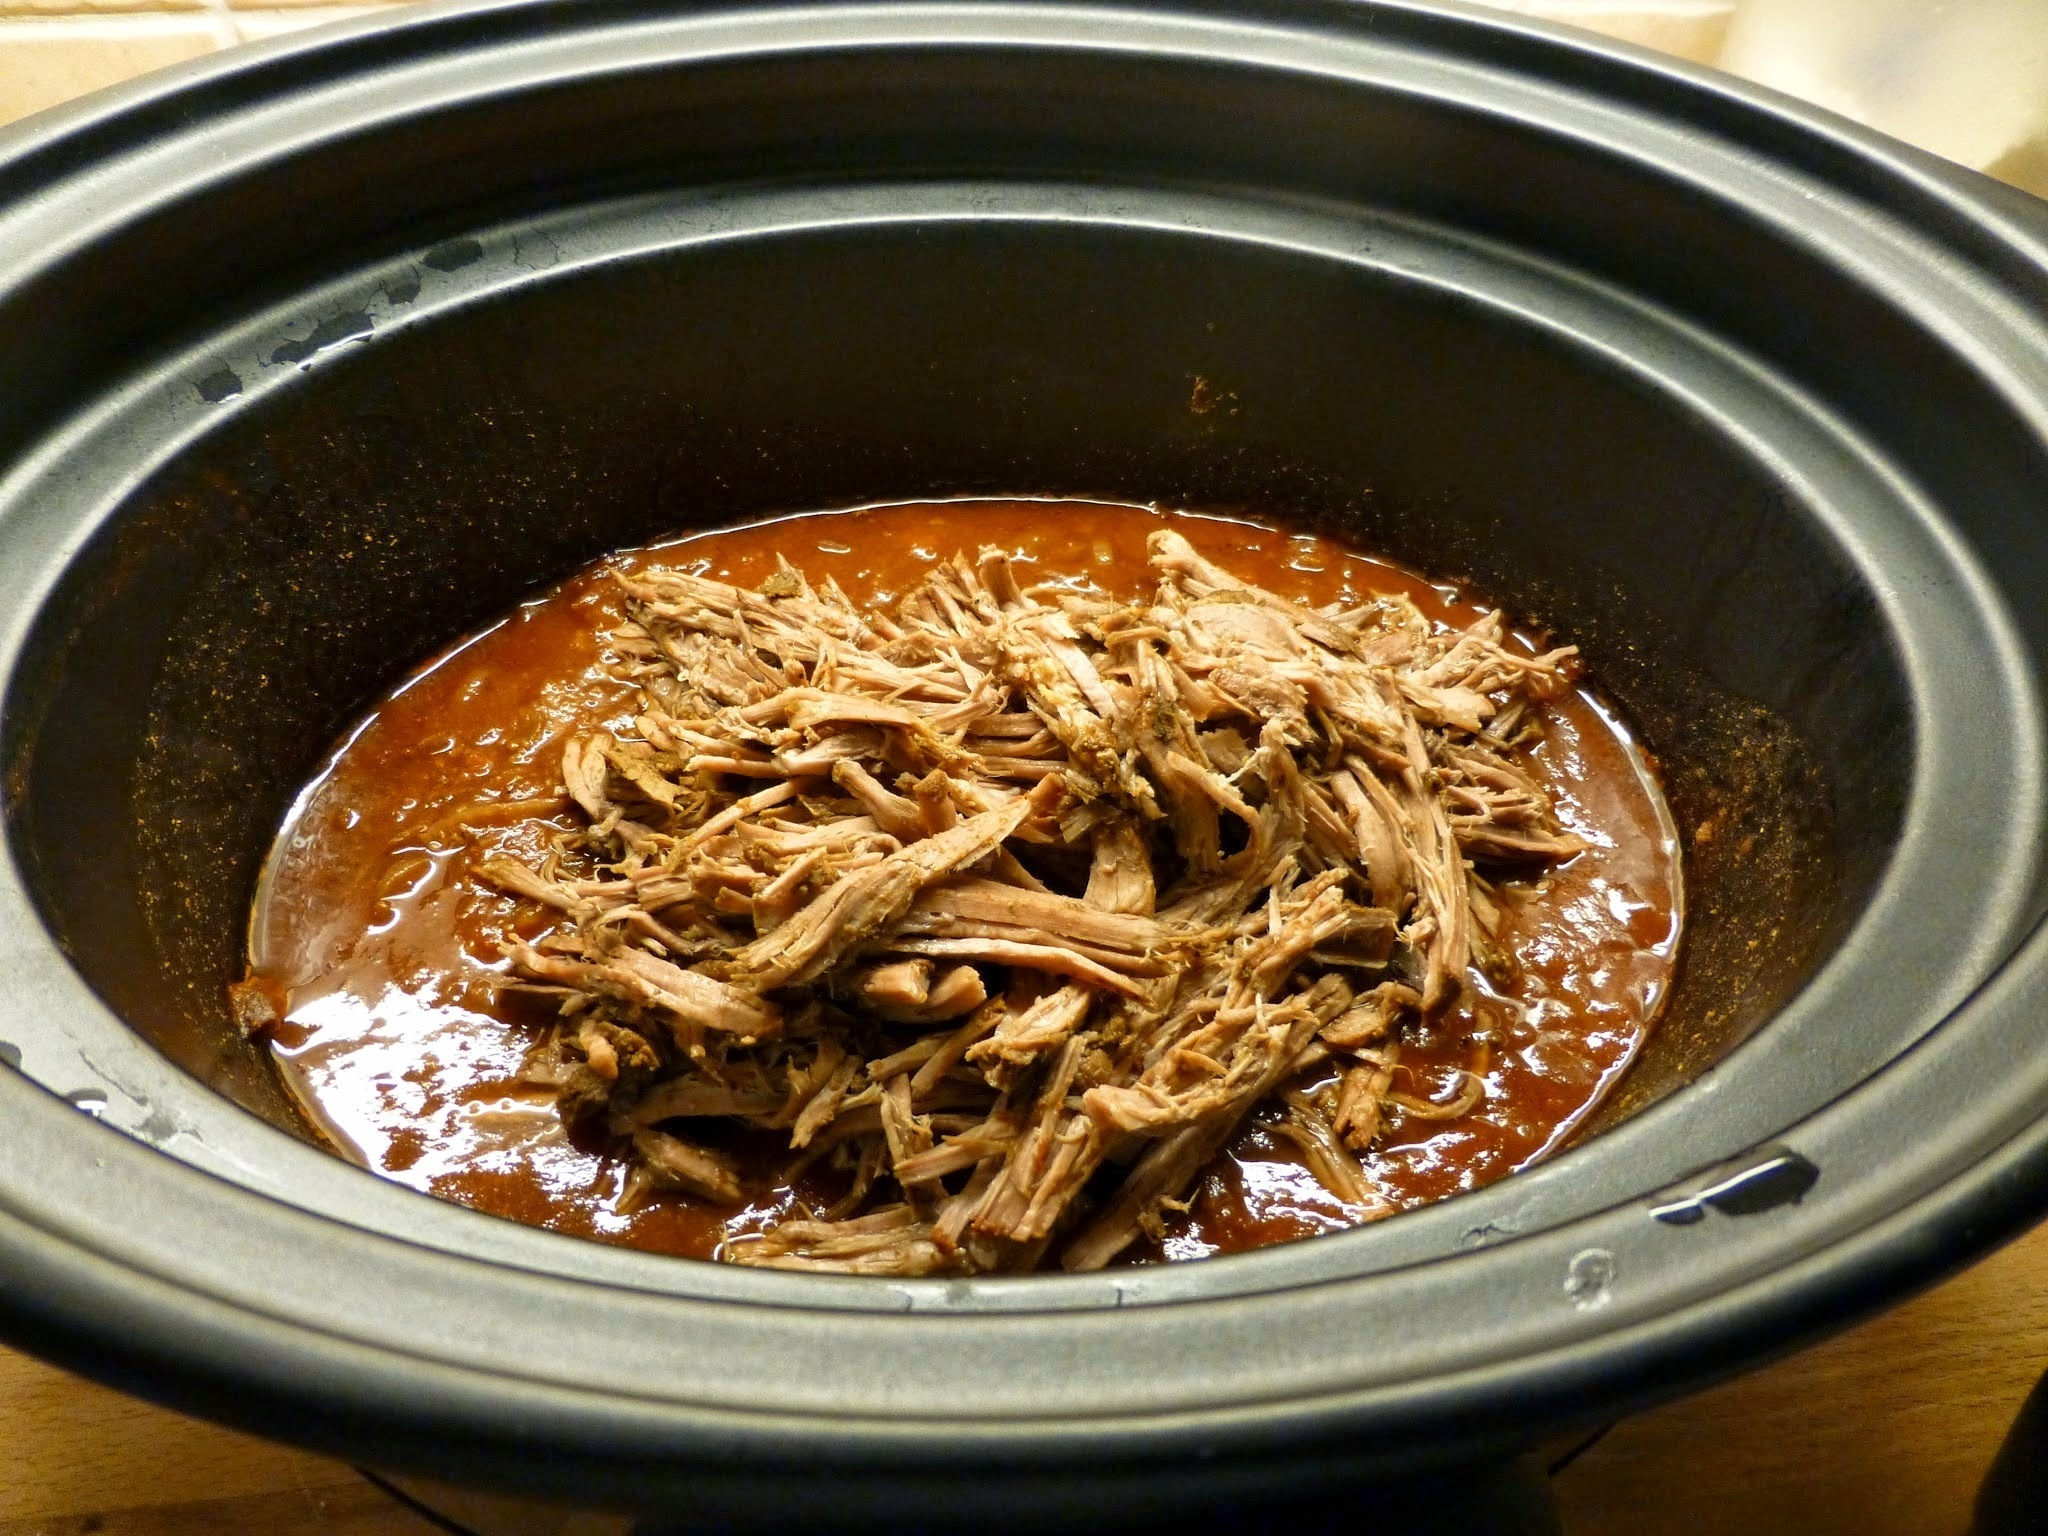 Fajitas i crock pot.